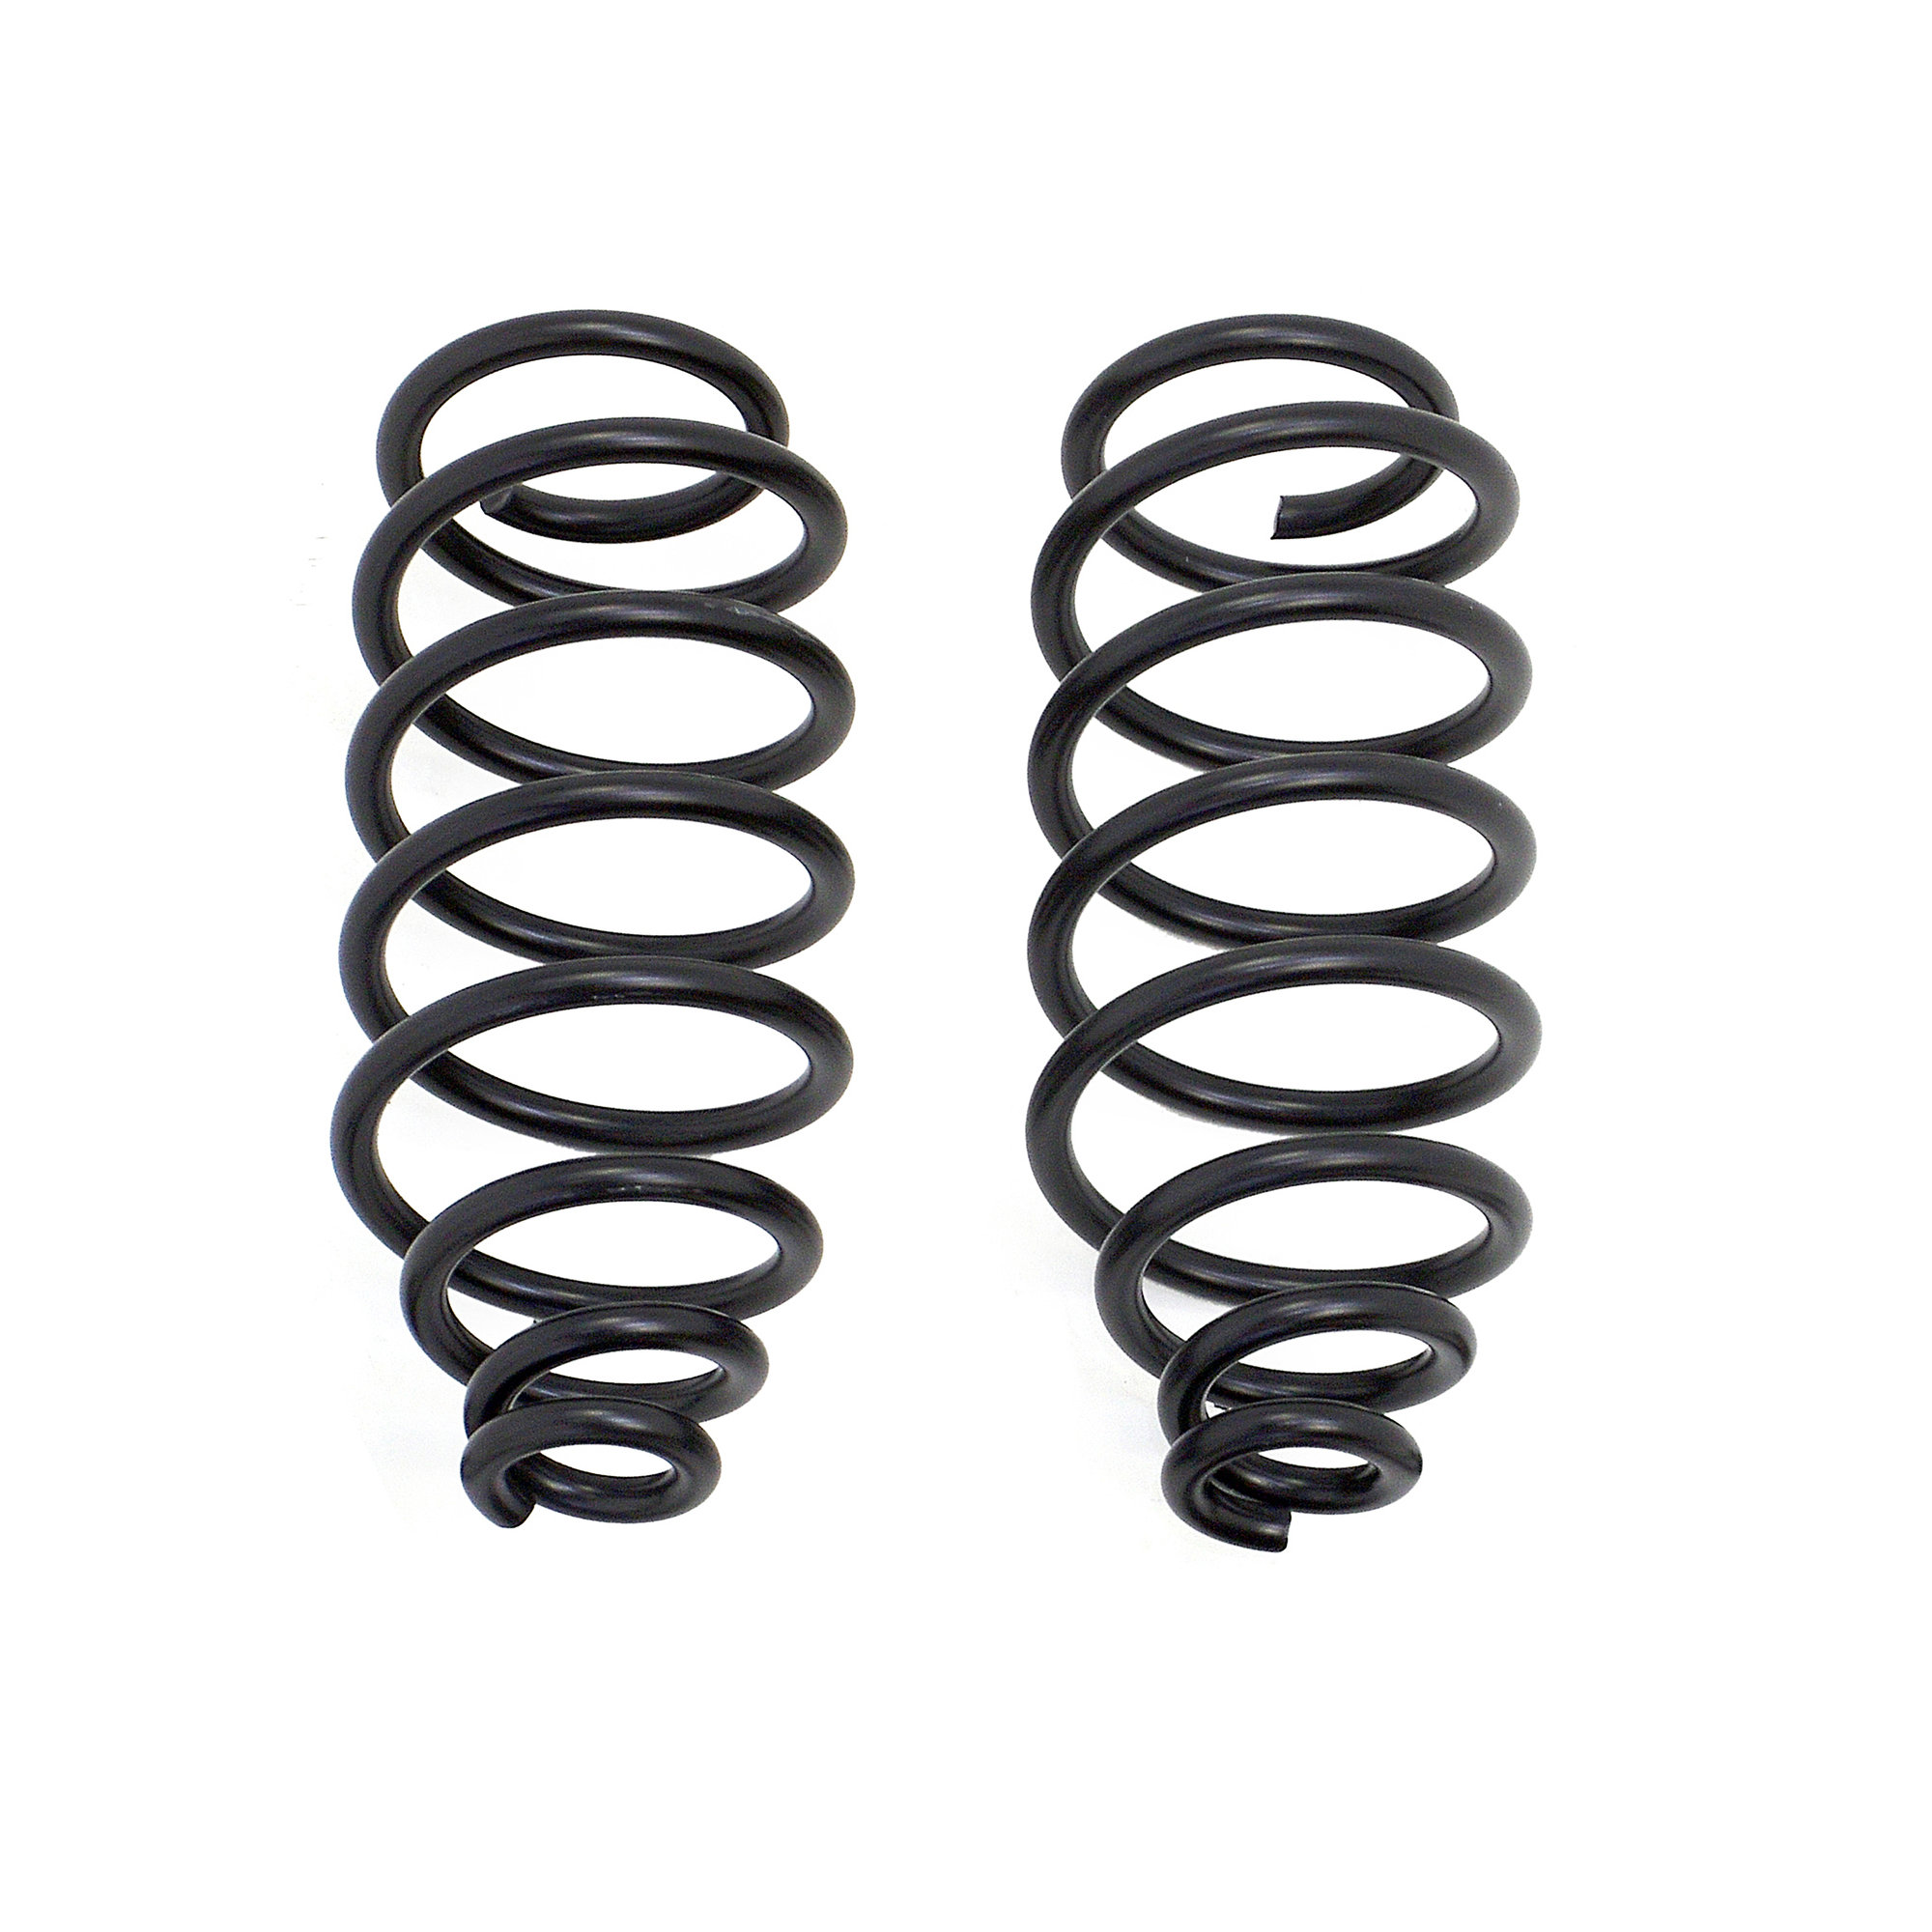 Readylift Suspension 47 R 2 5 Rear Spring Kit For 07 15 Jeep Wrangler Unlimited Jk 4 Door